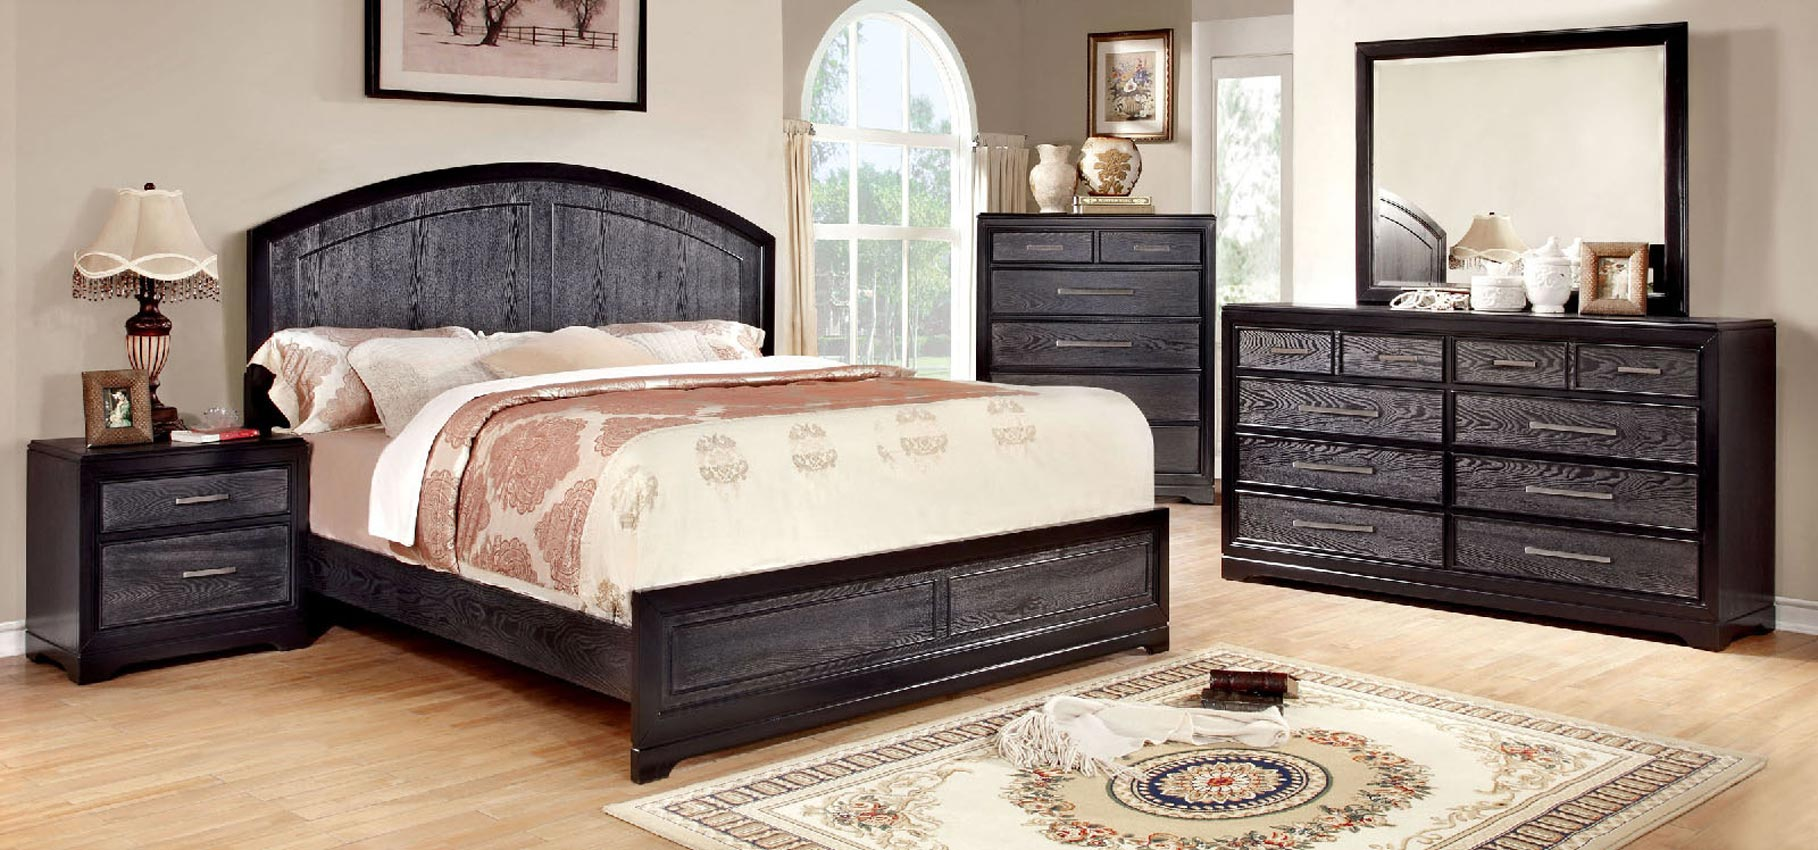 gray and black cal king bed frame. Black Bedroom Furniture Sets. Home Design Ideas